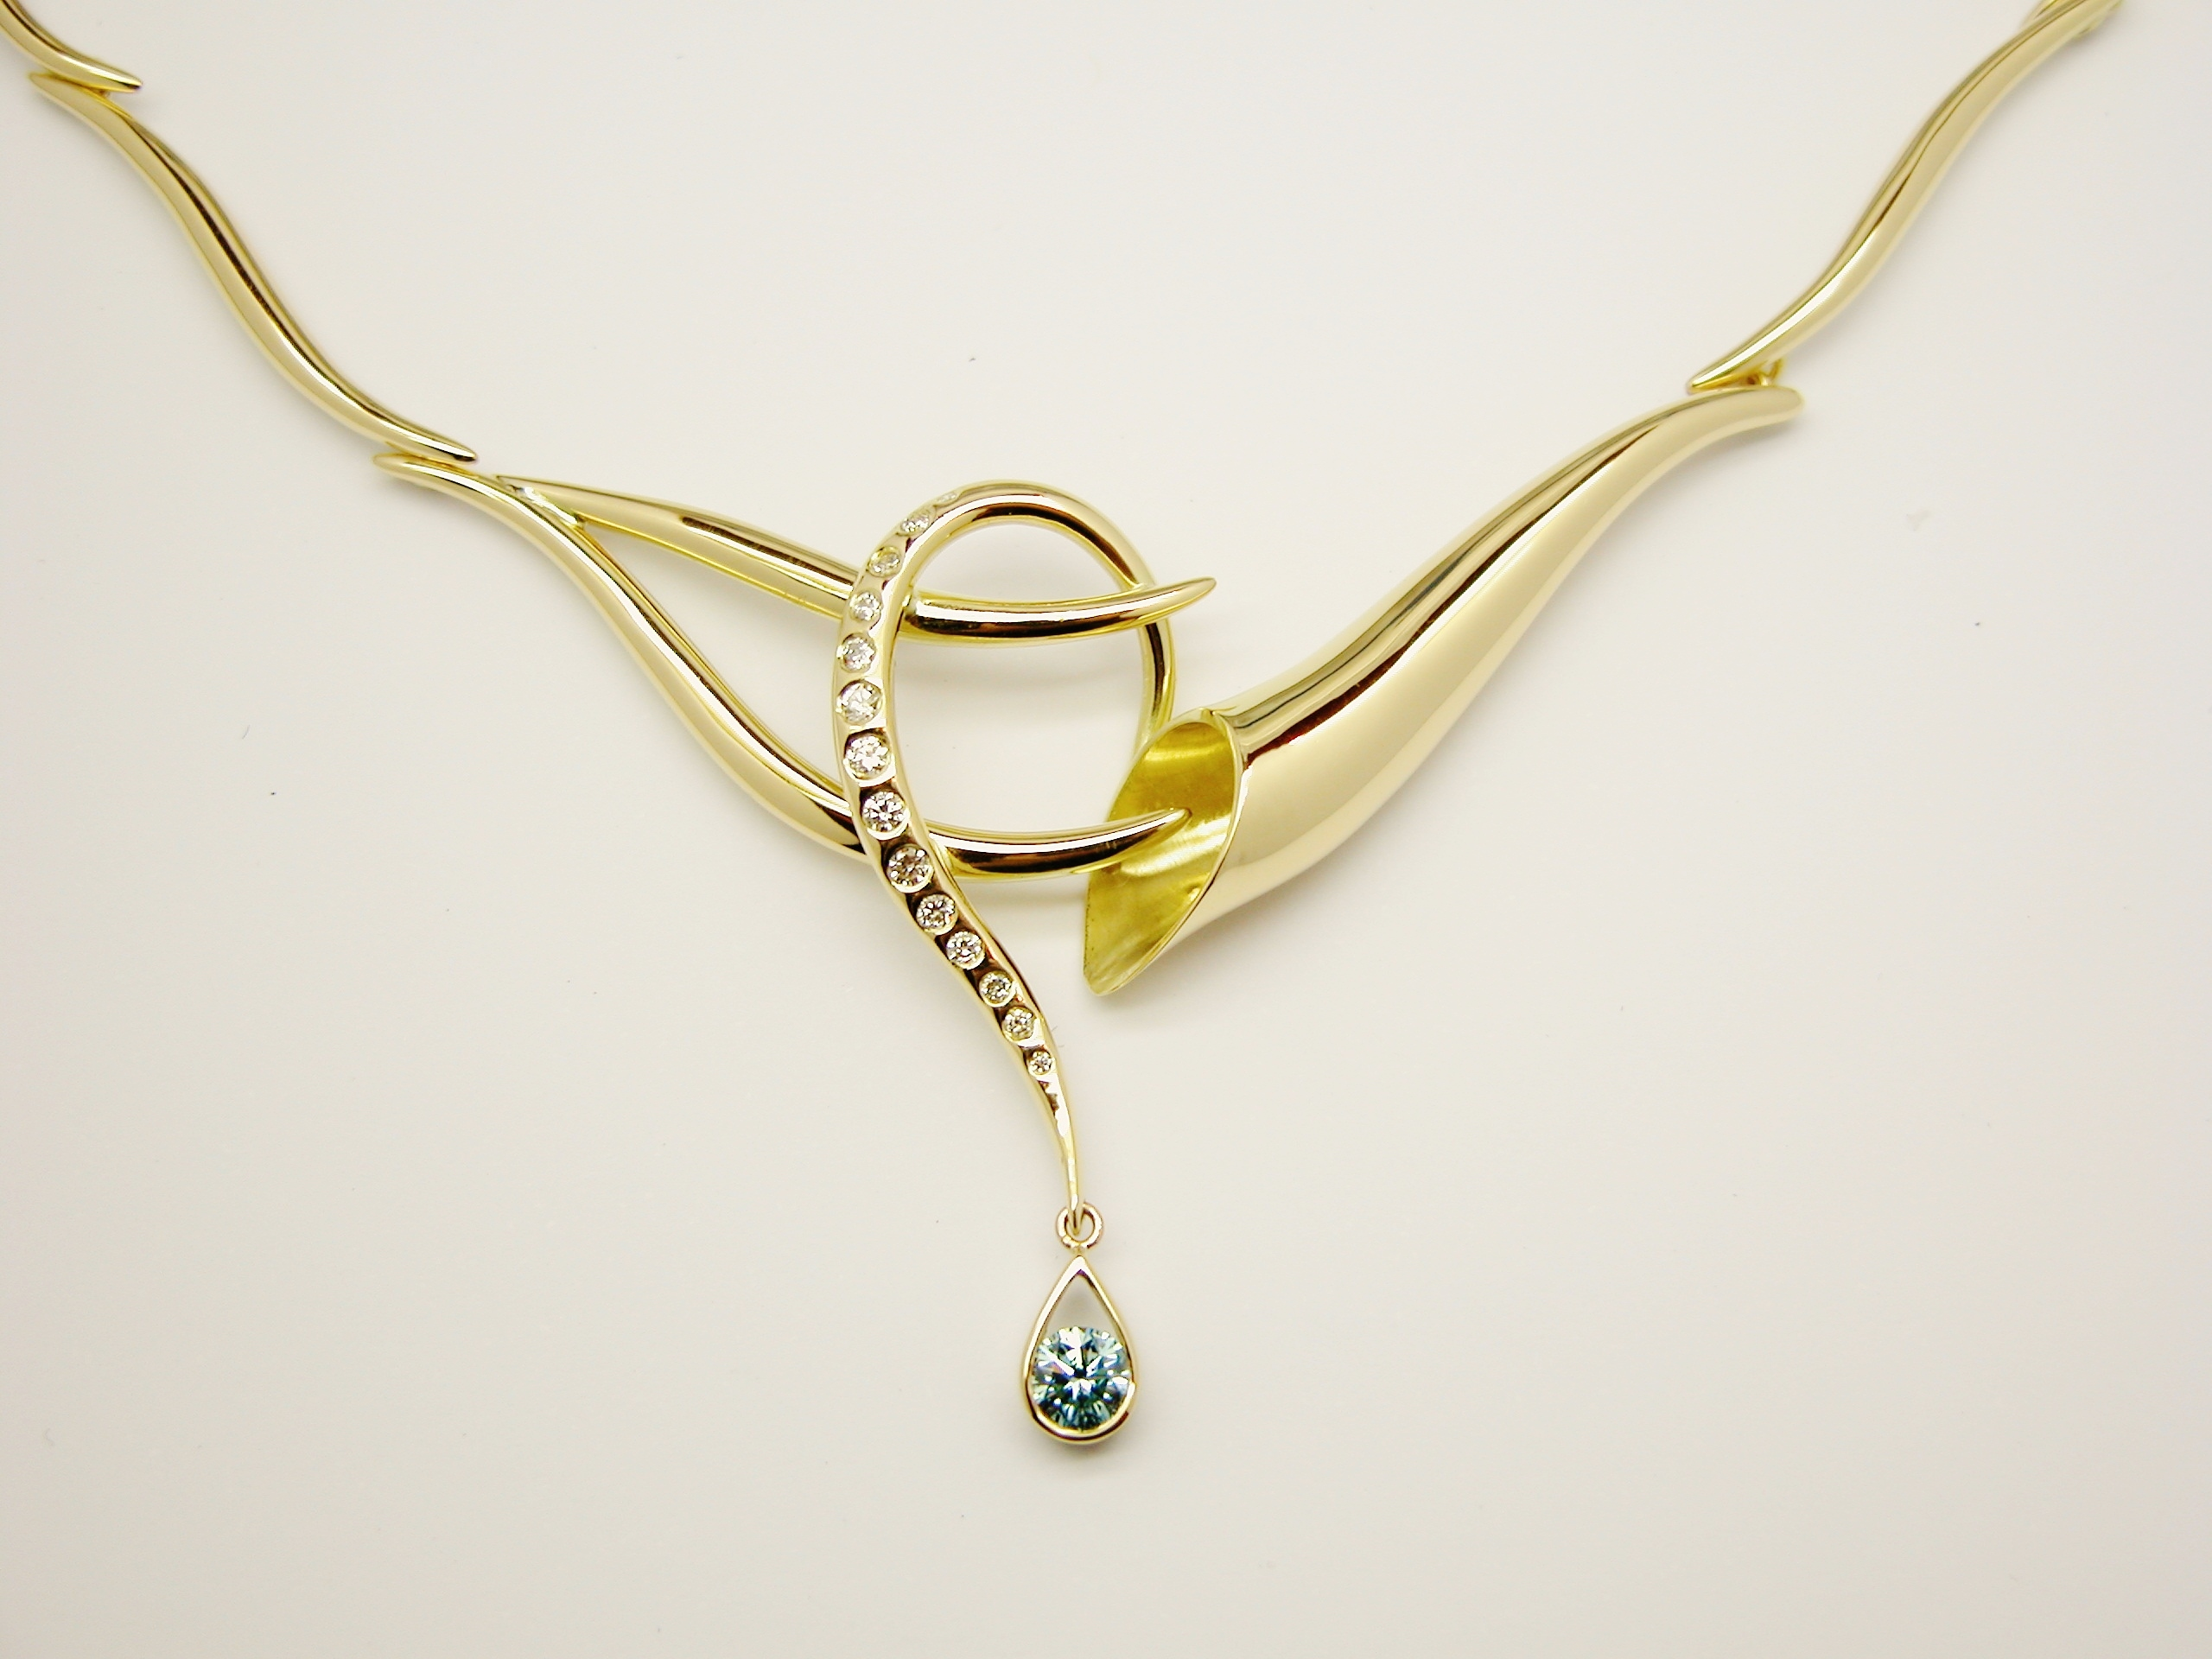 Hand crafted 18ct. yellow gold horn & loop shaped centre panel necklace flush set with round white diamonds and 1sky blue round diamond.